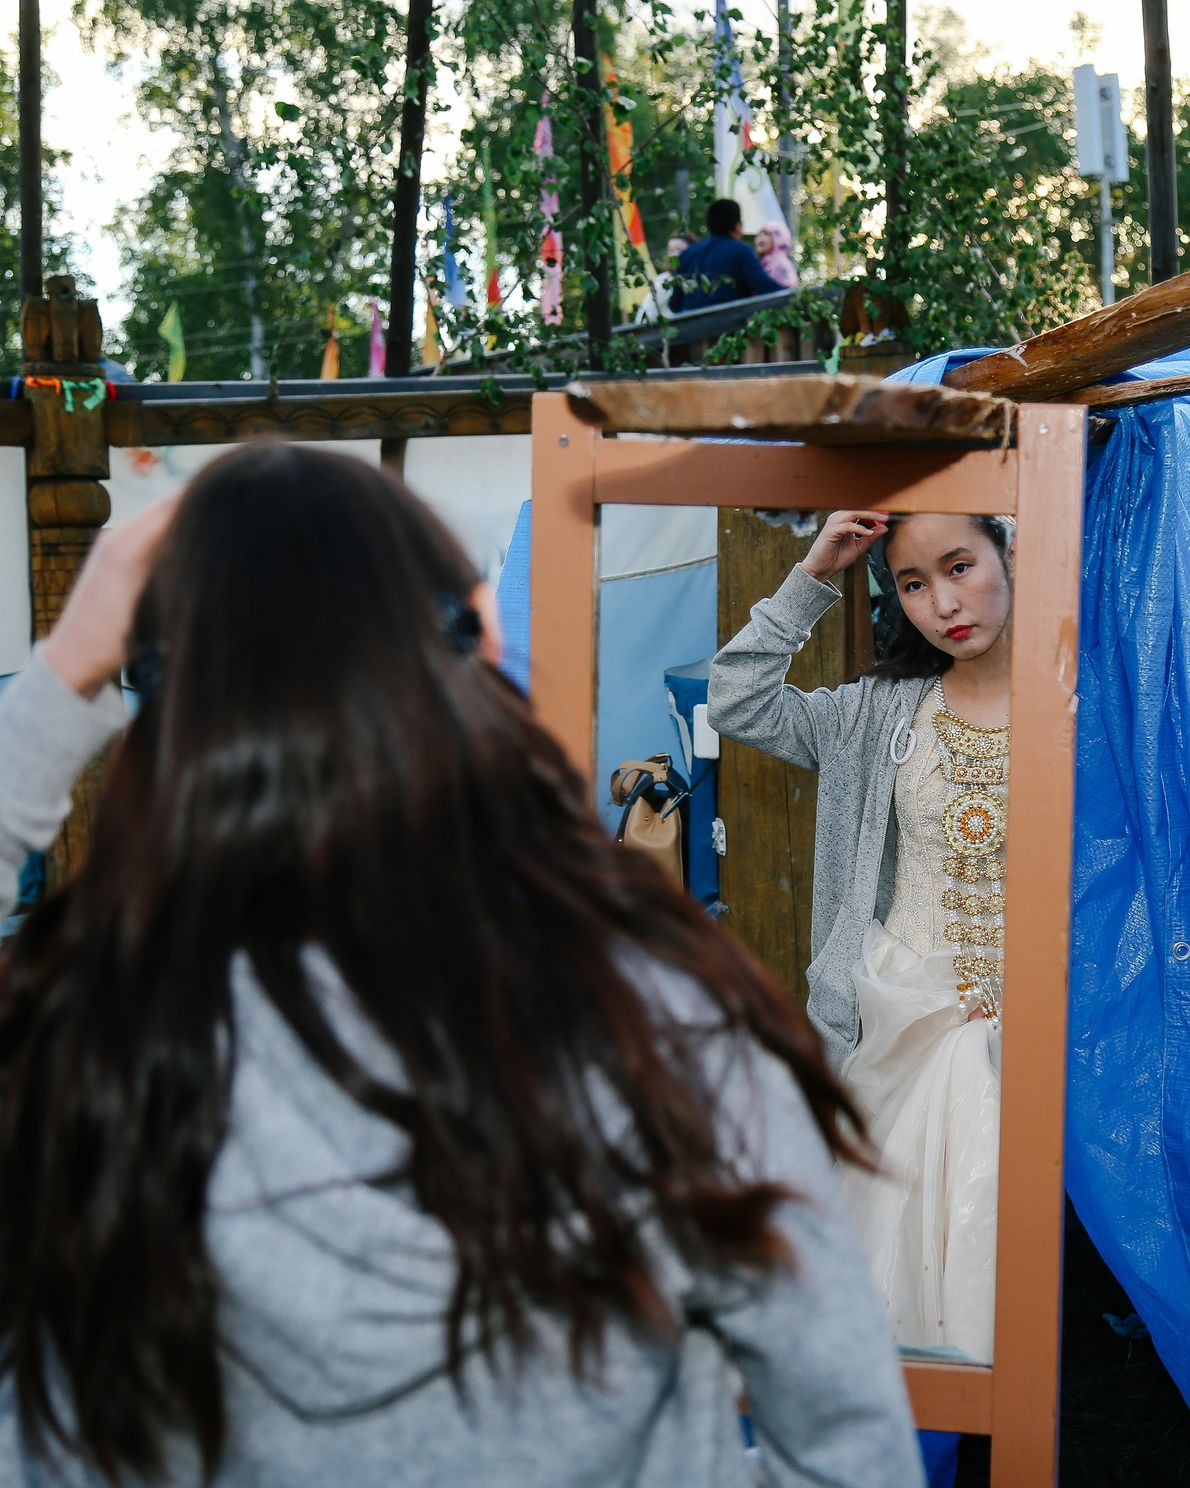 A festivalgoer dresses in traditional costume in the village of Amga. Many families spend time together ...